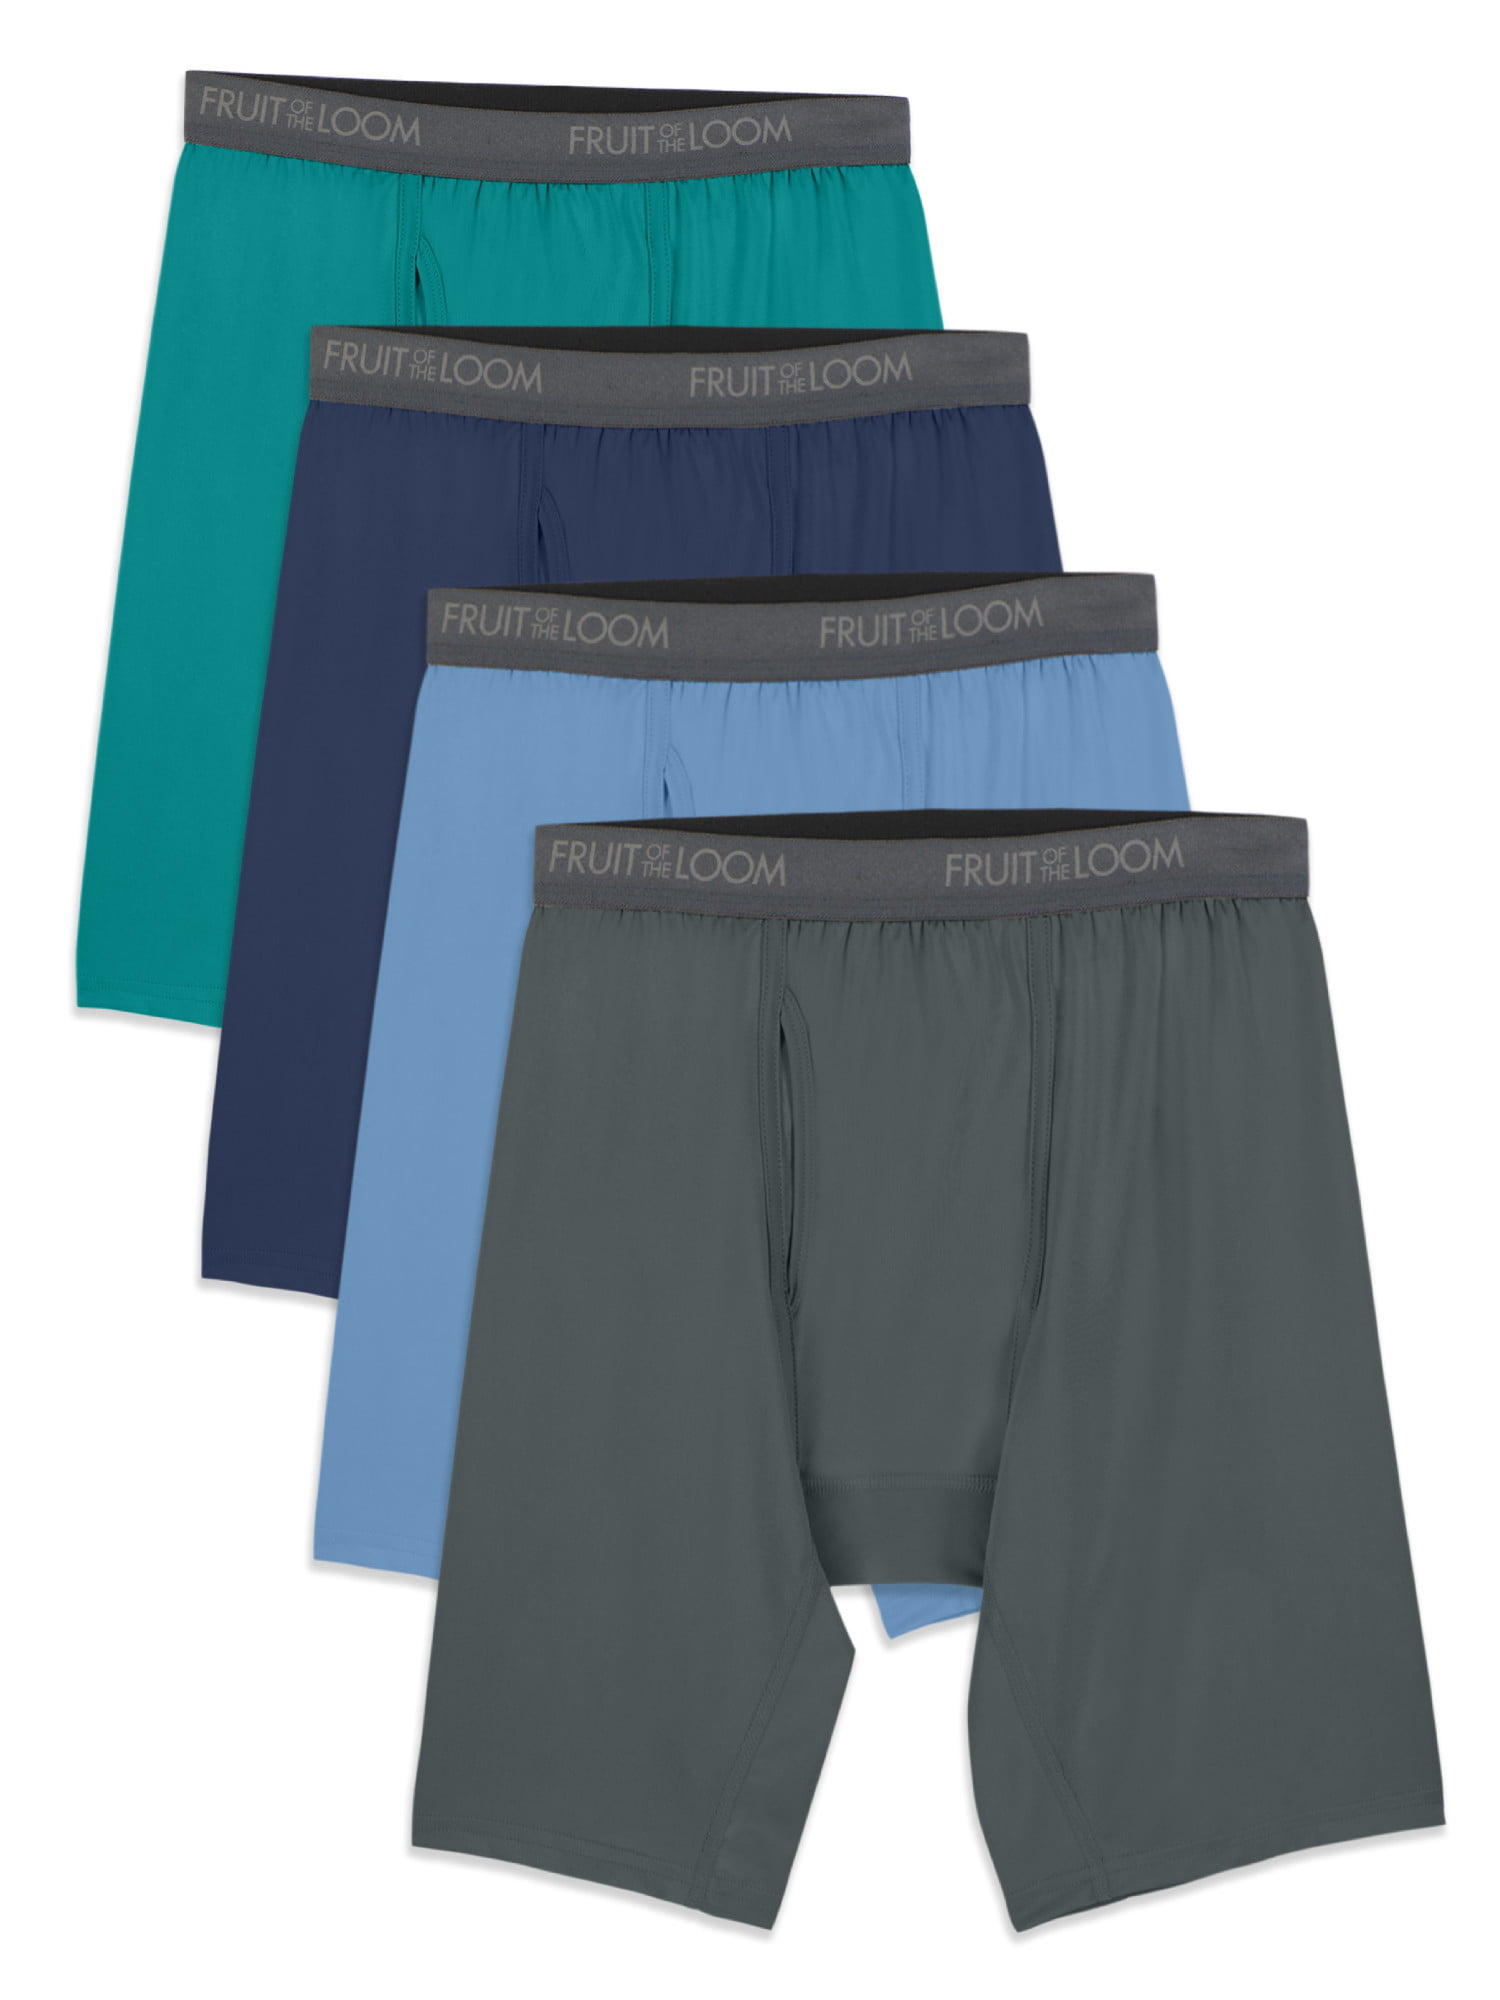 Fruit of the Loom Mens Assorted Color X-Size Boxer Brief Pack of 4